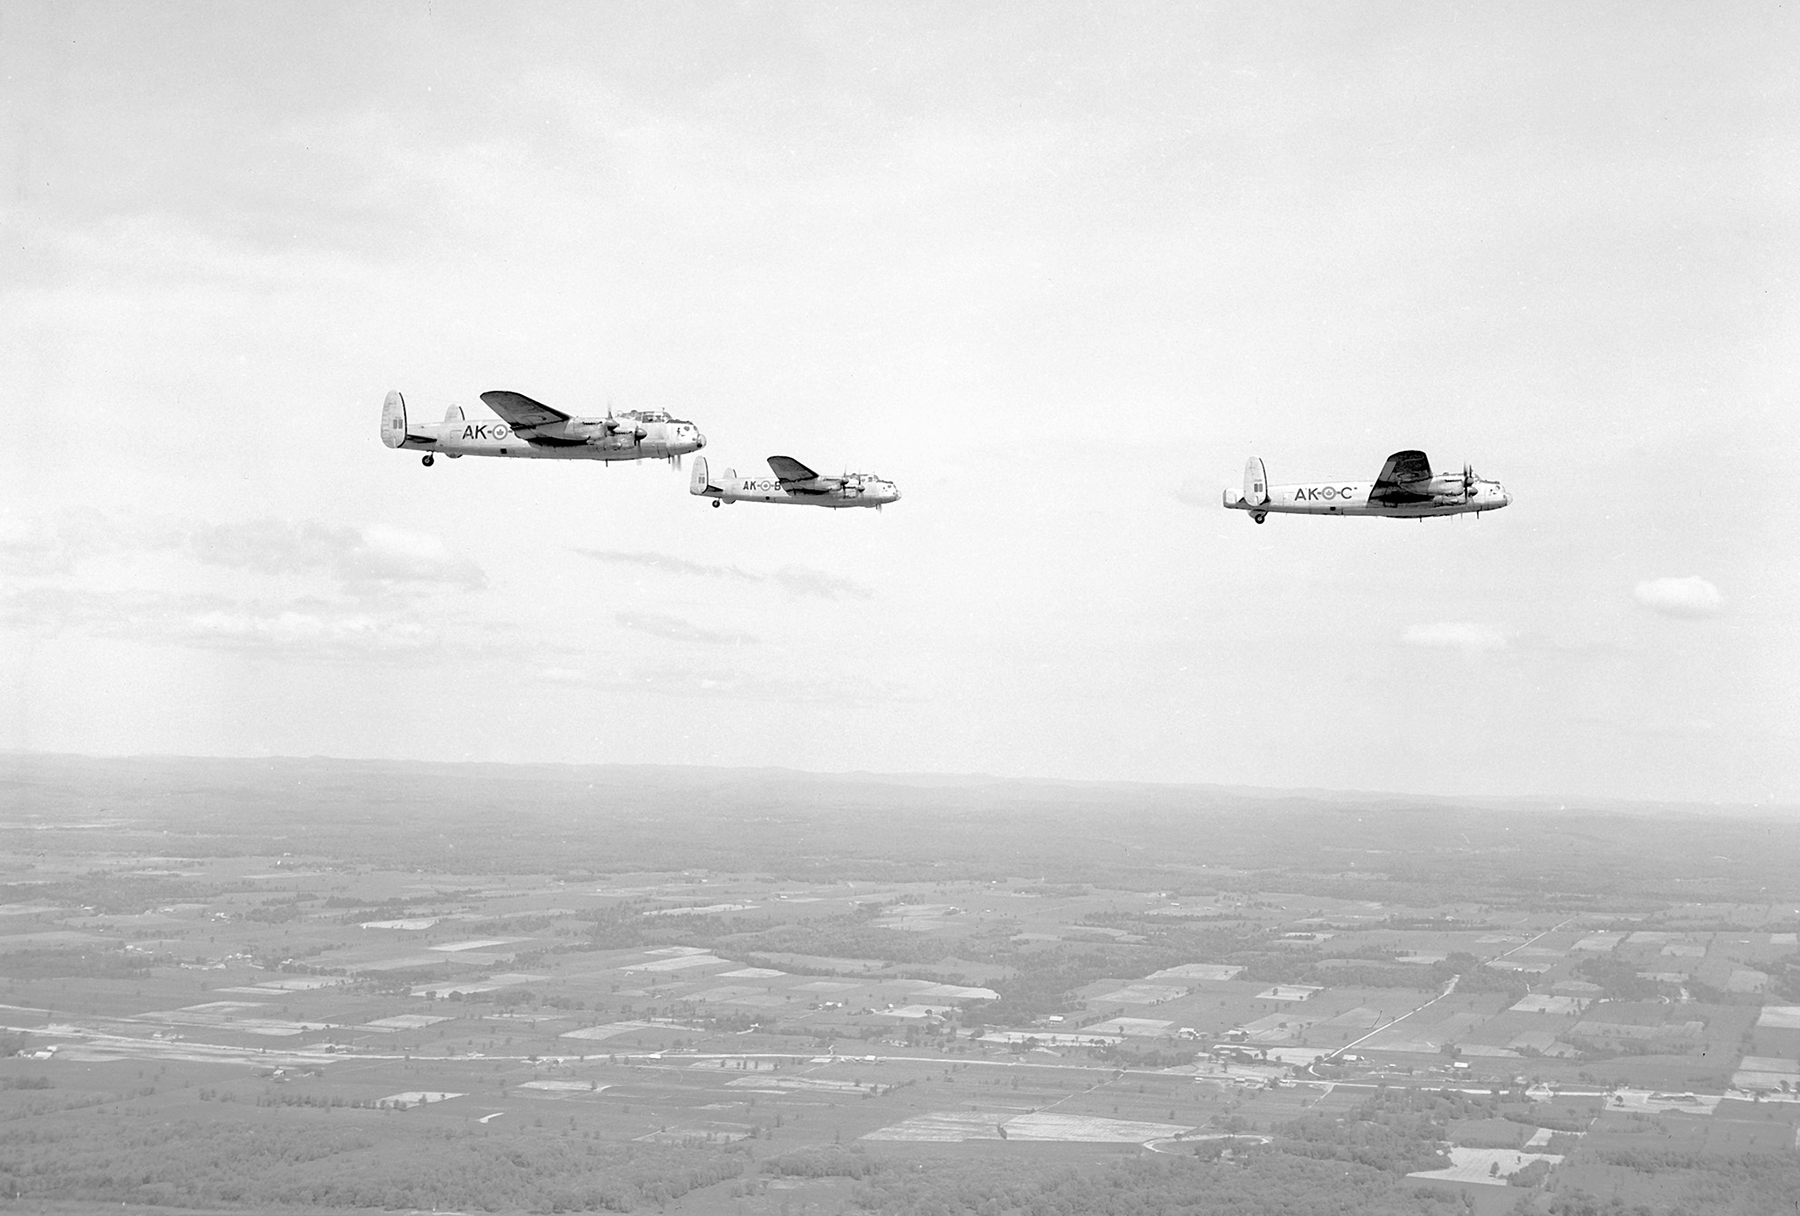 Three Lancaster bombers from 408 Squadron fly over RCAF Station Rockcliffe, near Ottawa, Ontario, on May 28, 1953. PHOTO: DND Archives